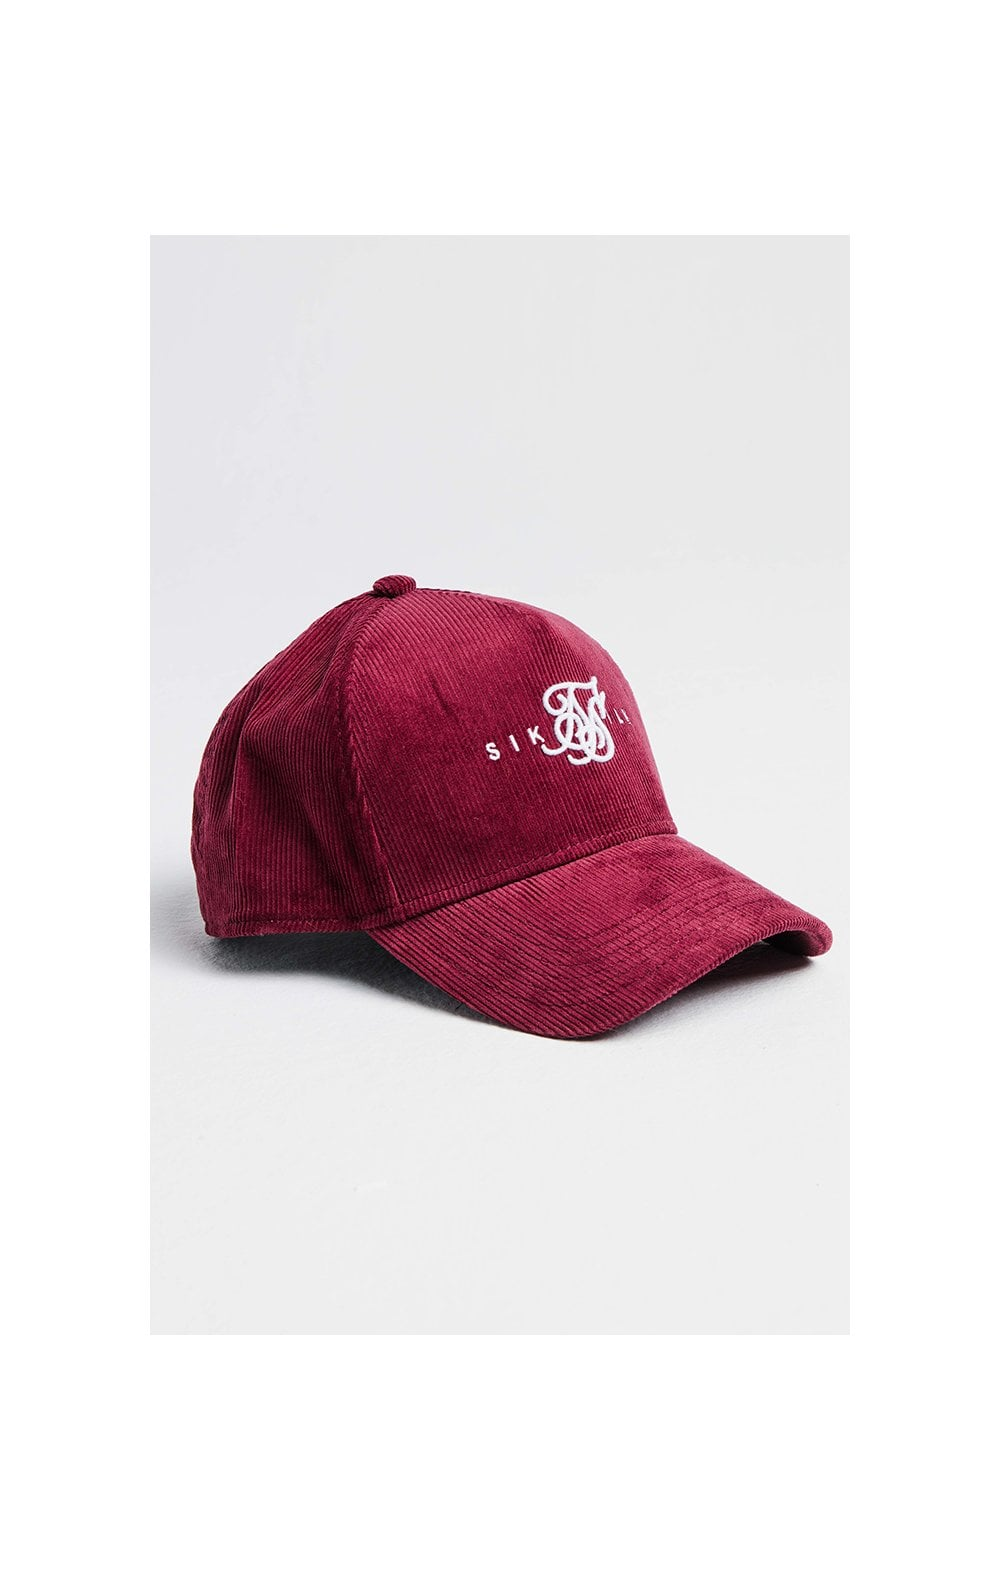 SikSilk Full Cord Trucker - Burgundy